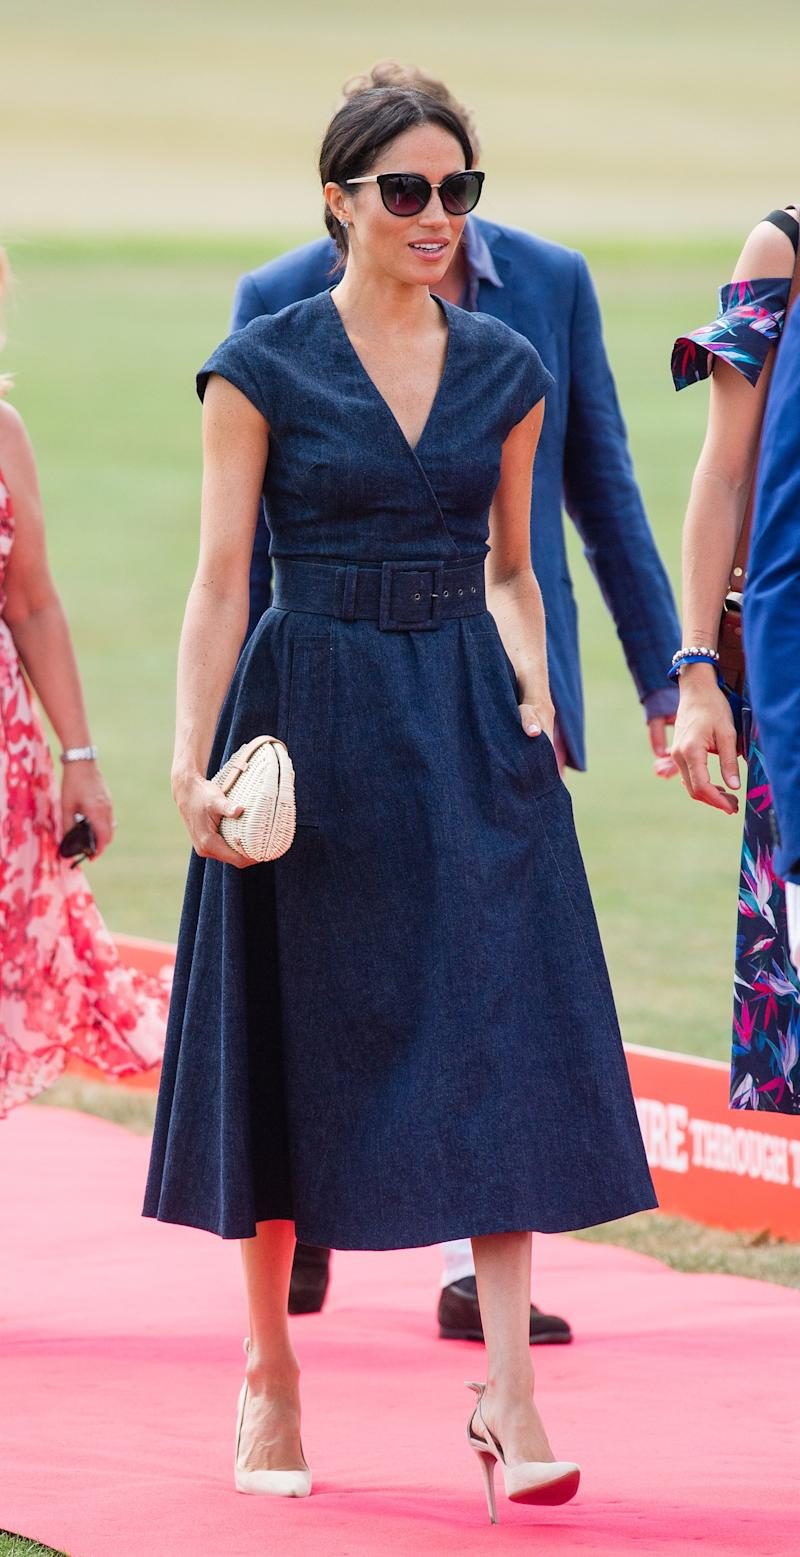 Meghan, Duchess of Sussex, visits the Sentebale Polo 2018 of the Royal County of Berkshire Polo Club on July 26, 2018 in Windsor, England